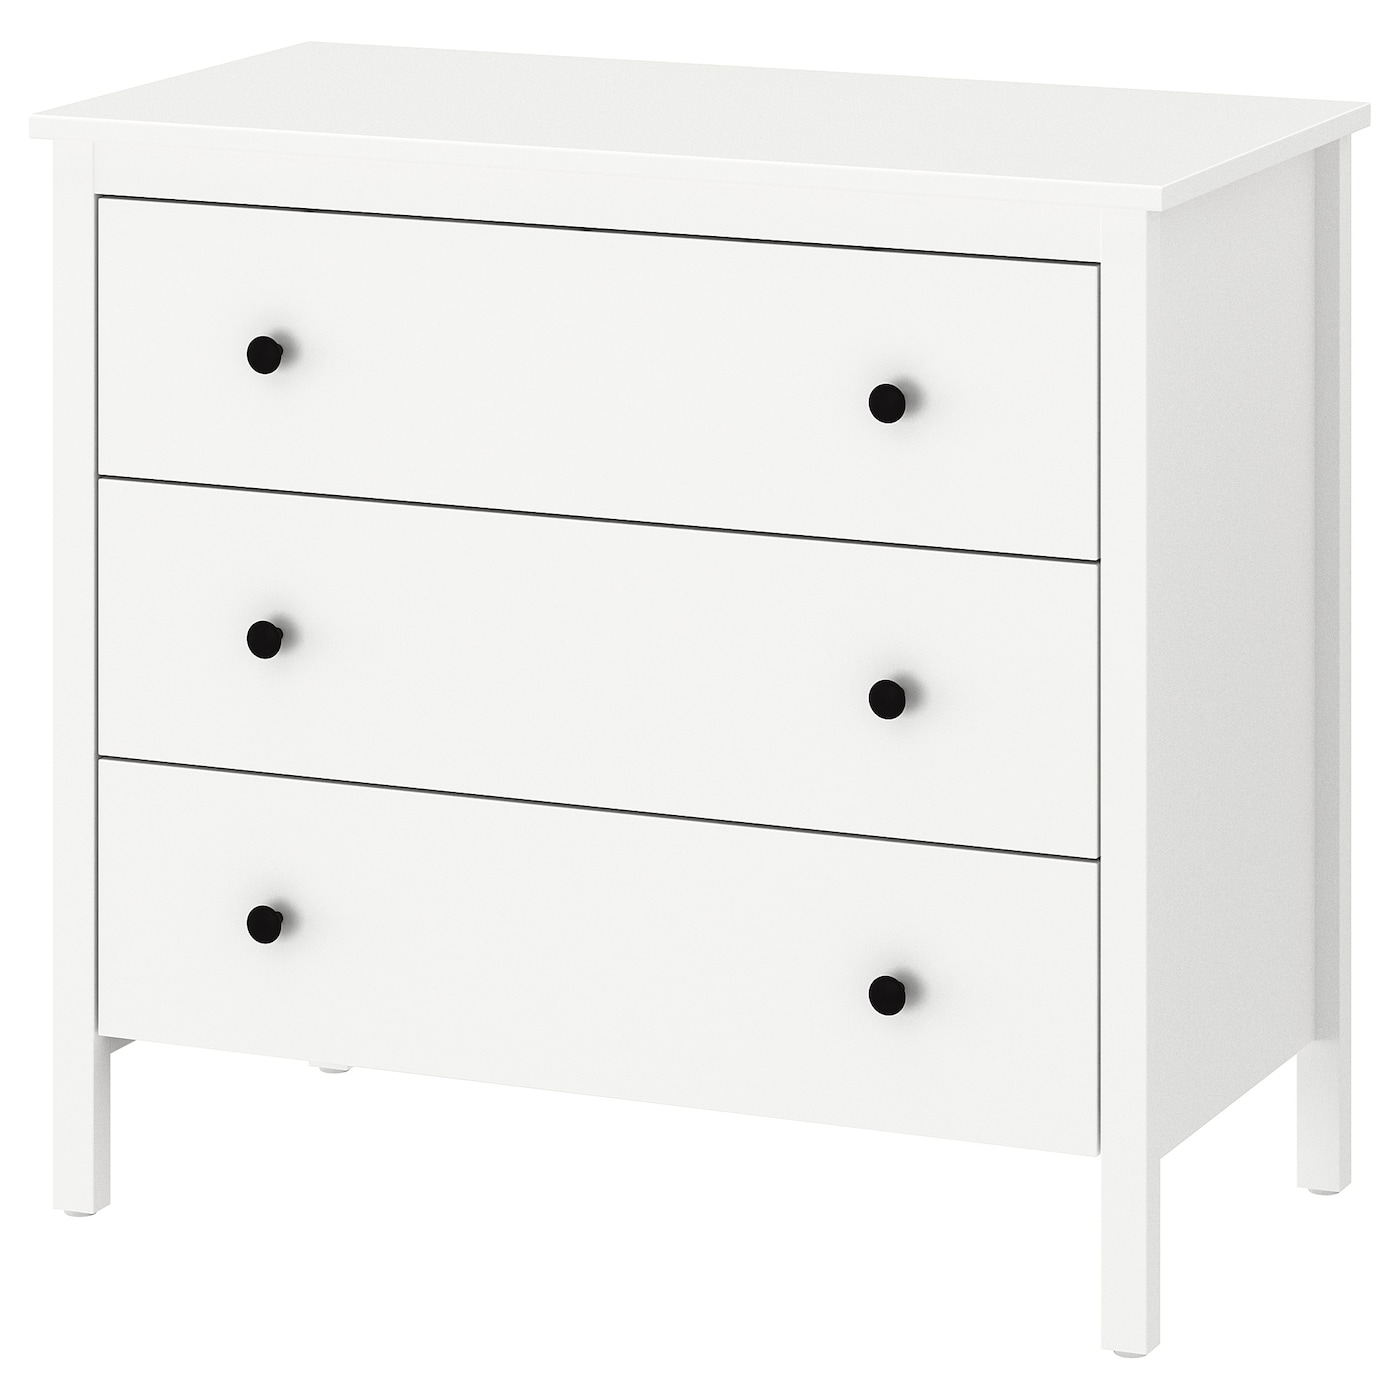 IKEA KOPPANG chest of 3 drawers